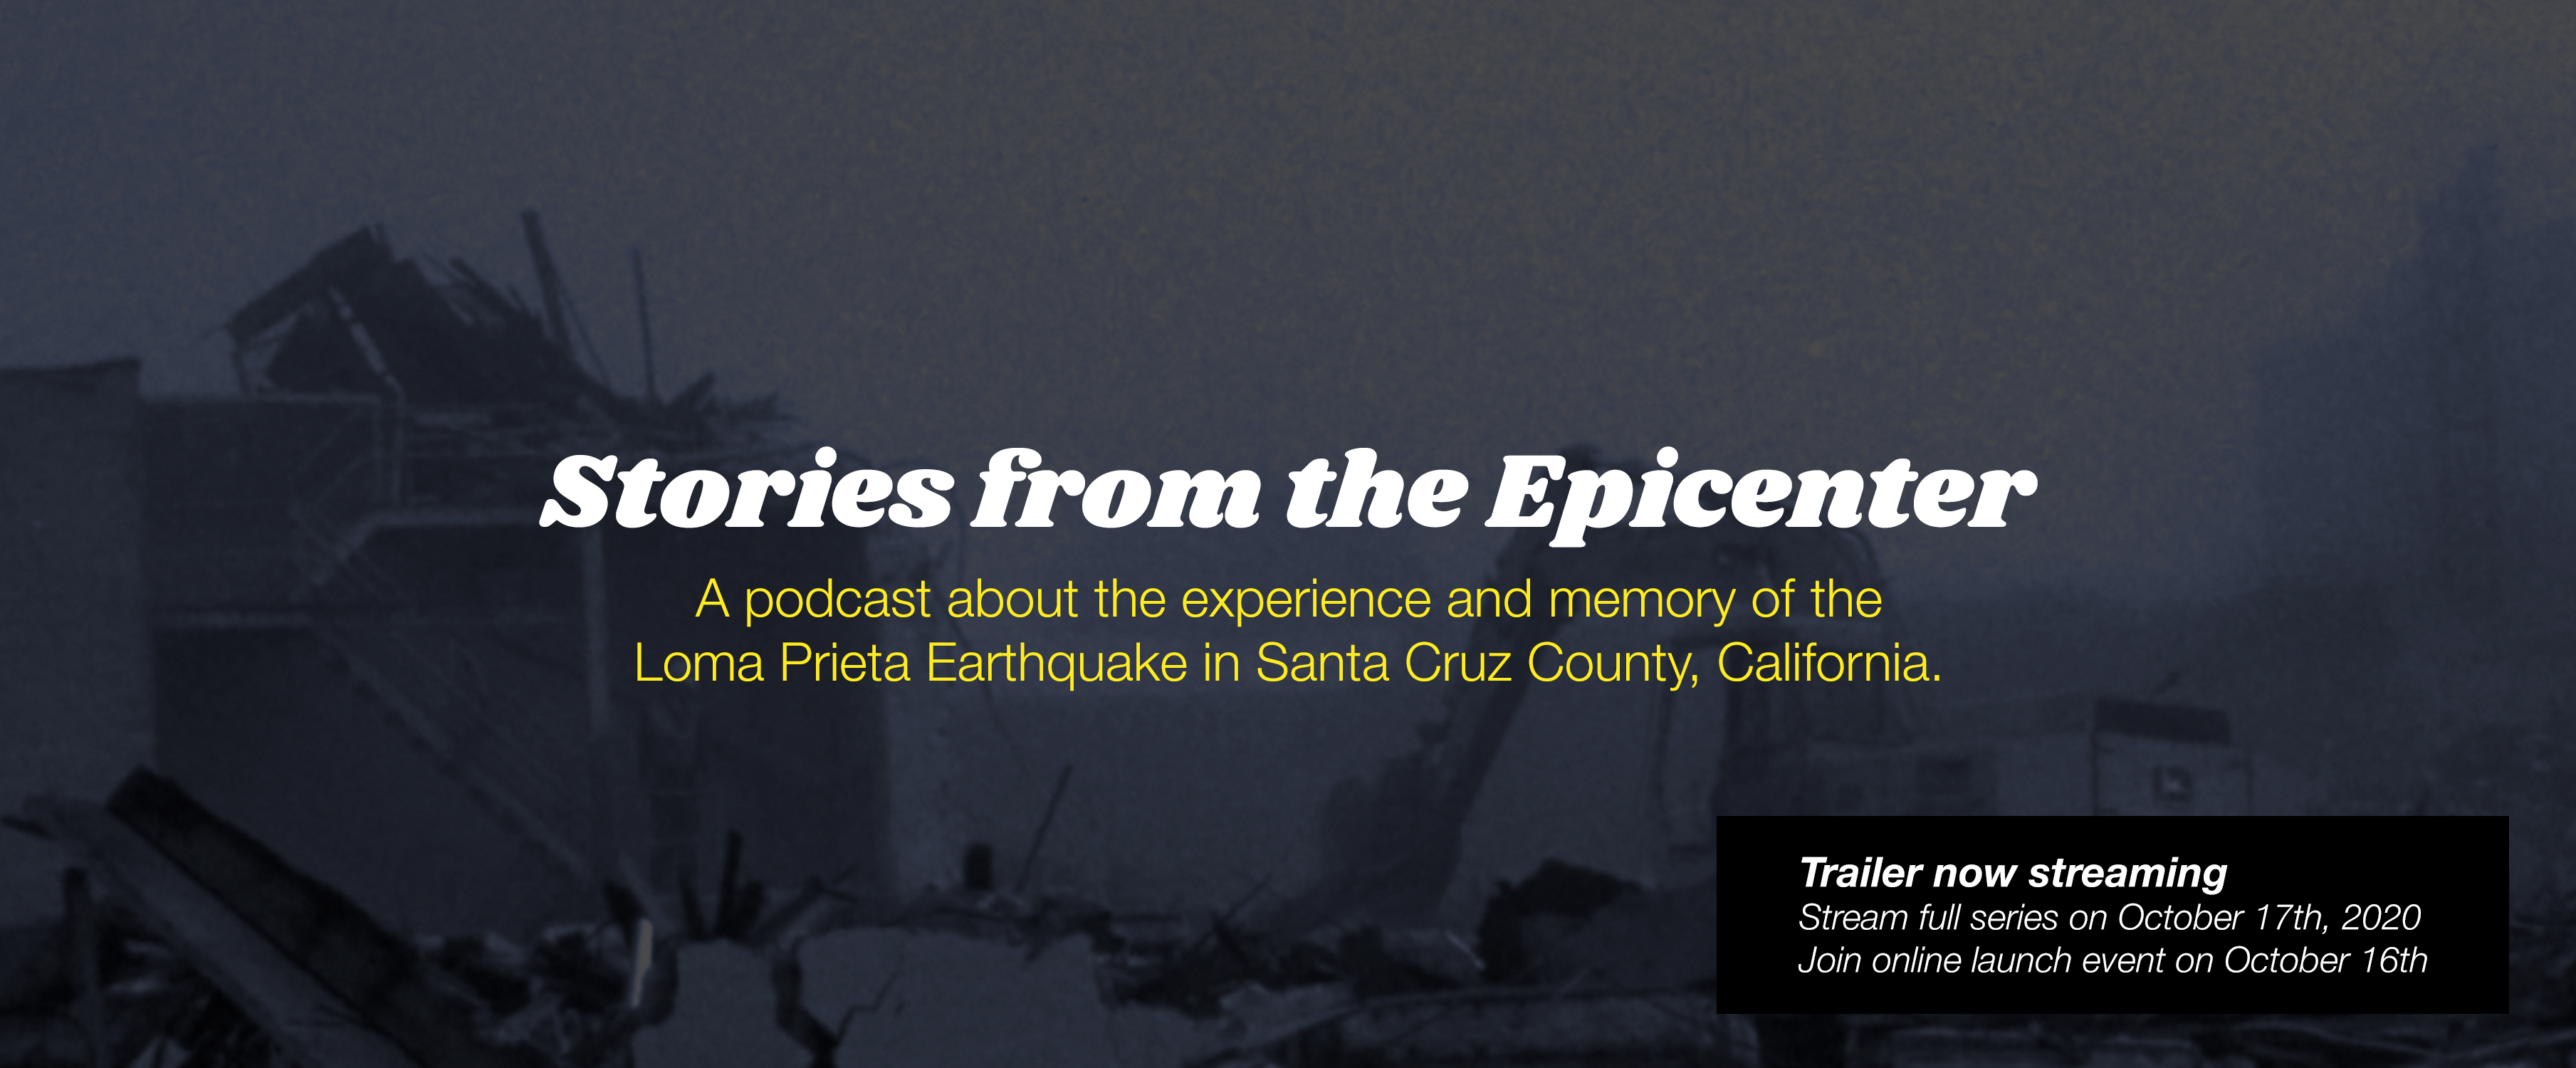 Stories from the Epicenter—a podcast about the experience and memory of the Loma Prieta Earthquake in Santa Cruz County, California.